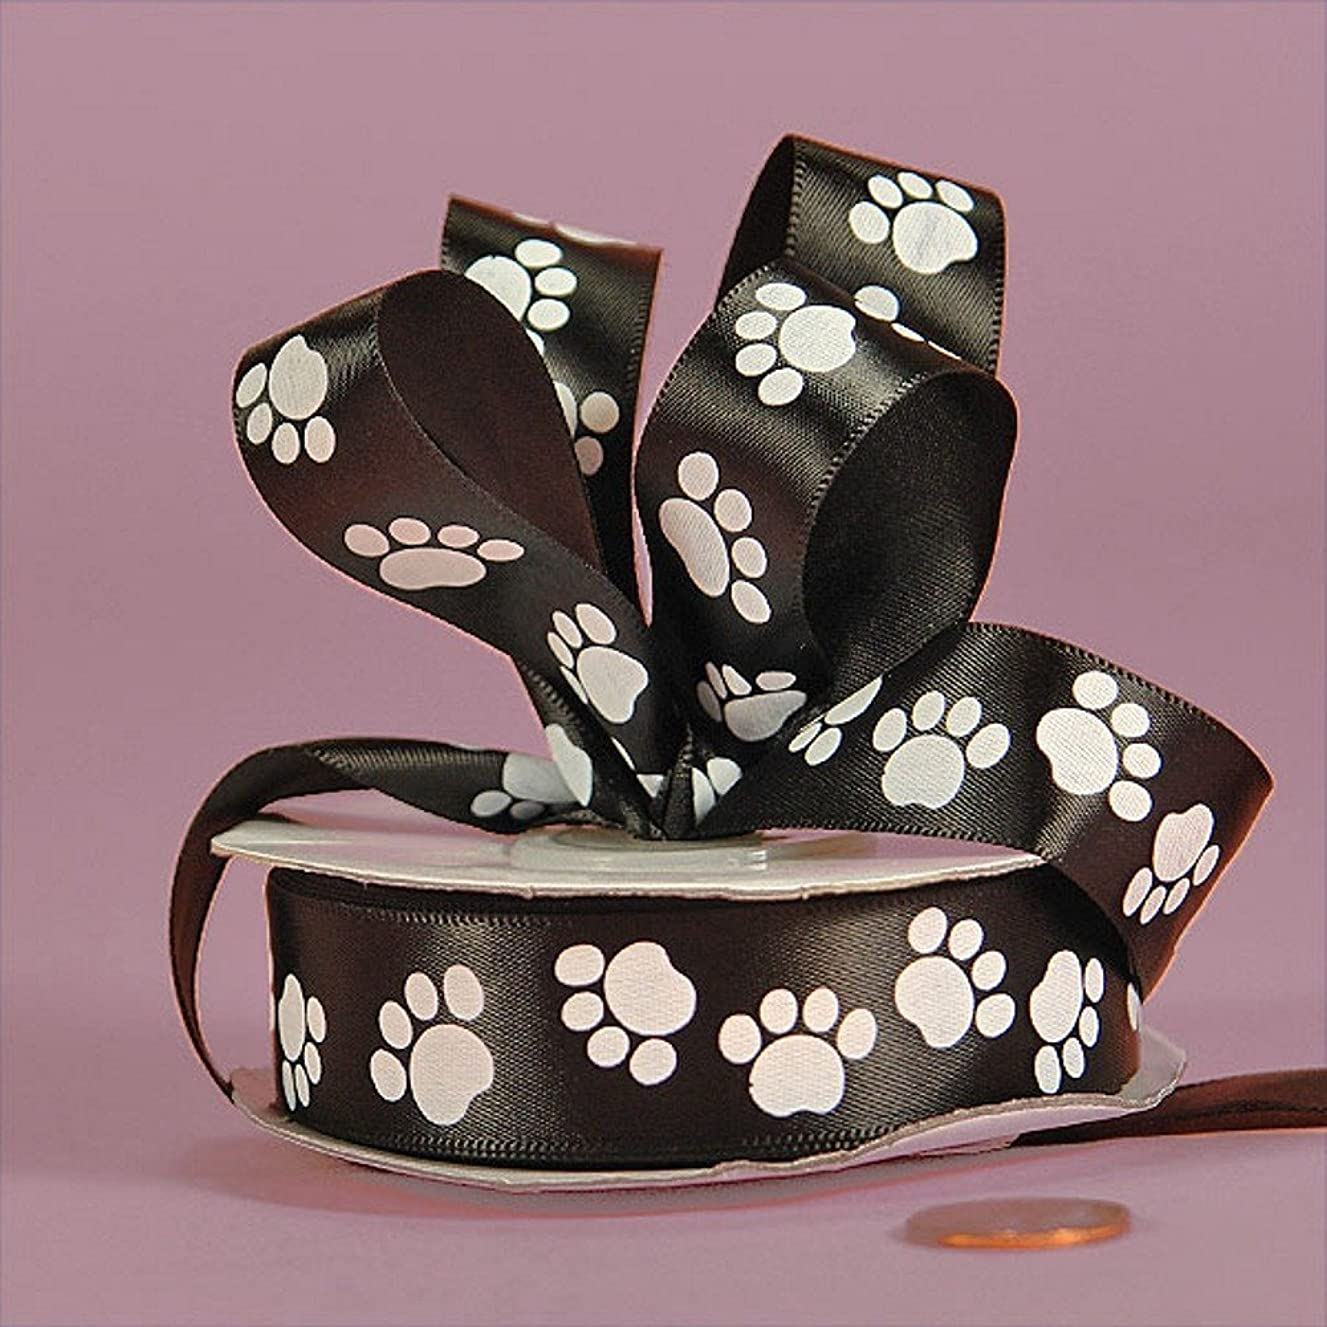 White Paw Prints On Black Satin Ribbon - 5/8in. Width - 25 Yards